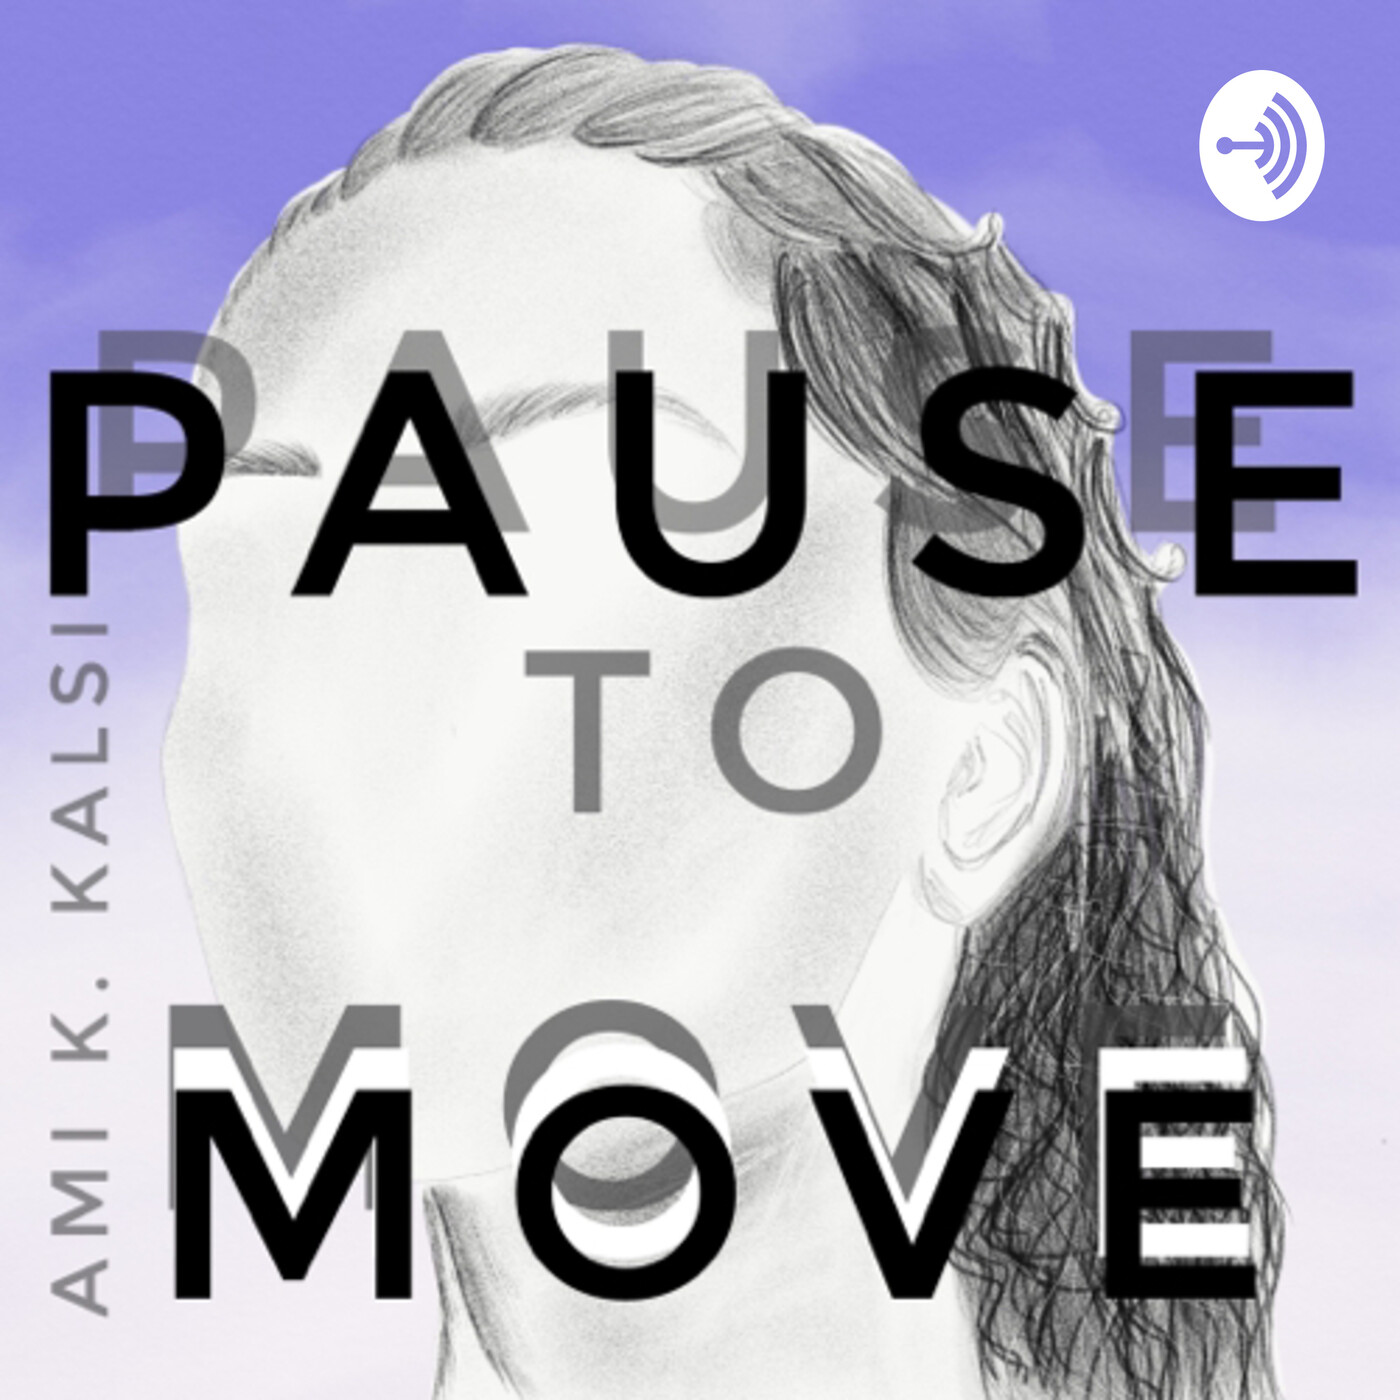 Pause to Move (Trailer)